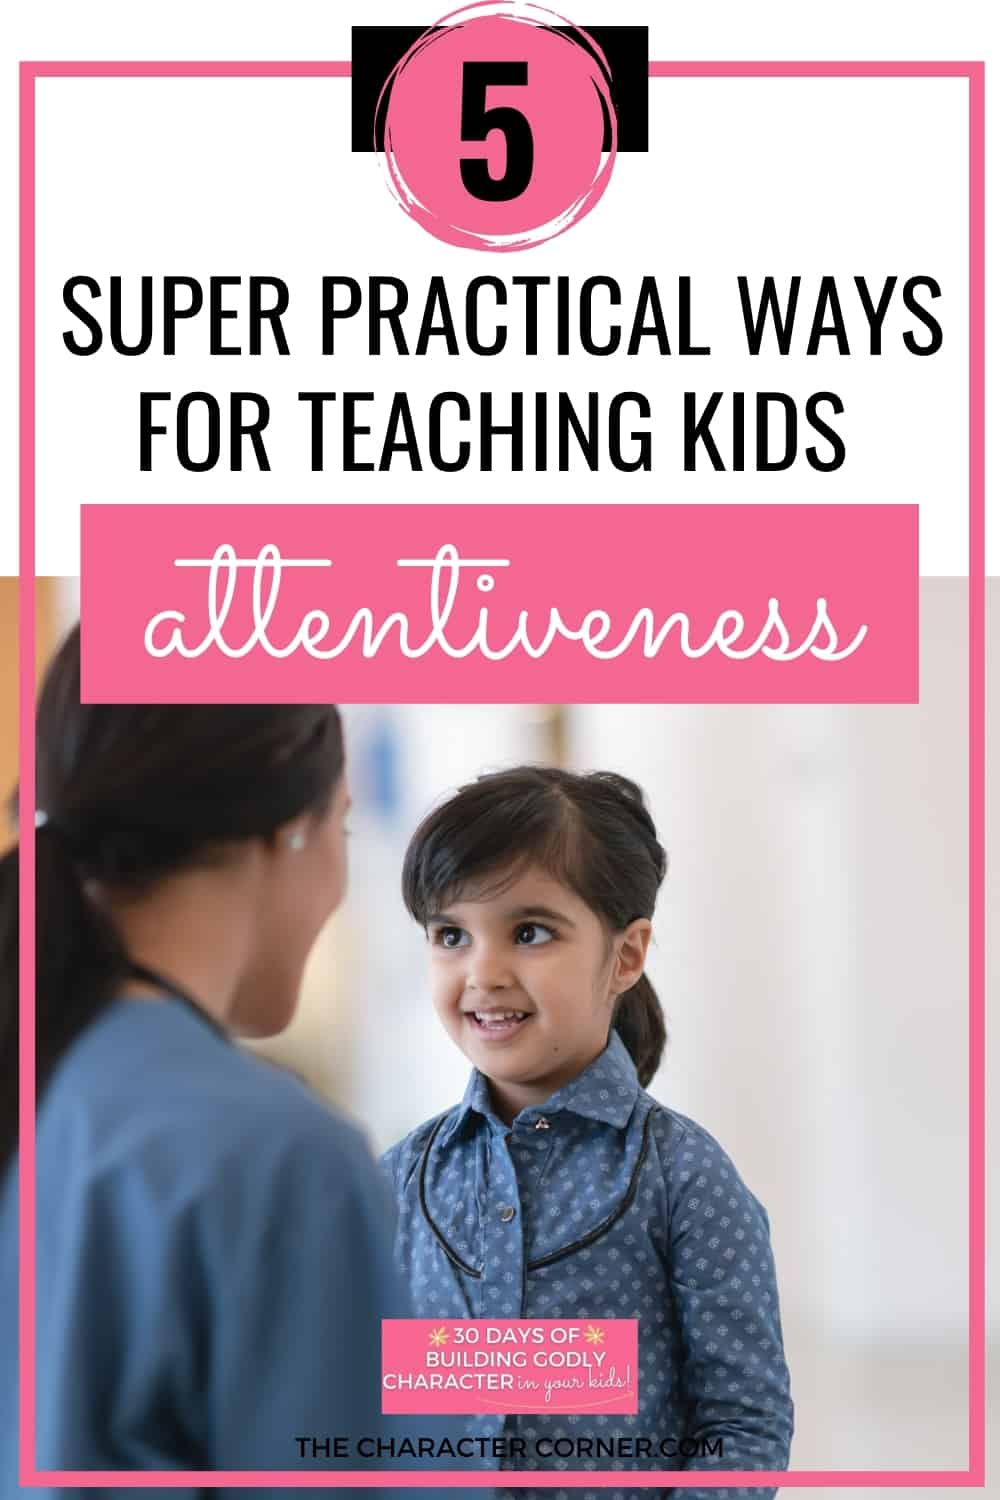 Mom and daughter talking text on image 5 Super Practical Ways For Teaching Kids Attentiveness